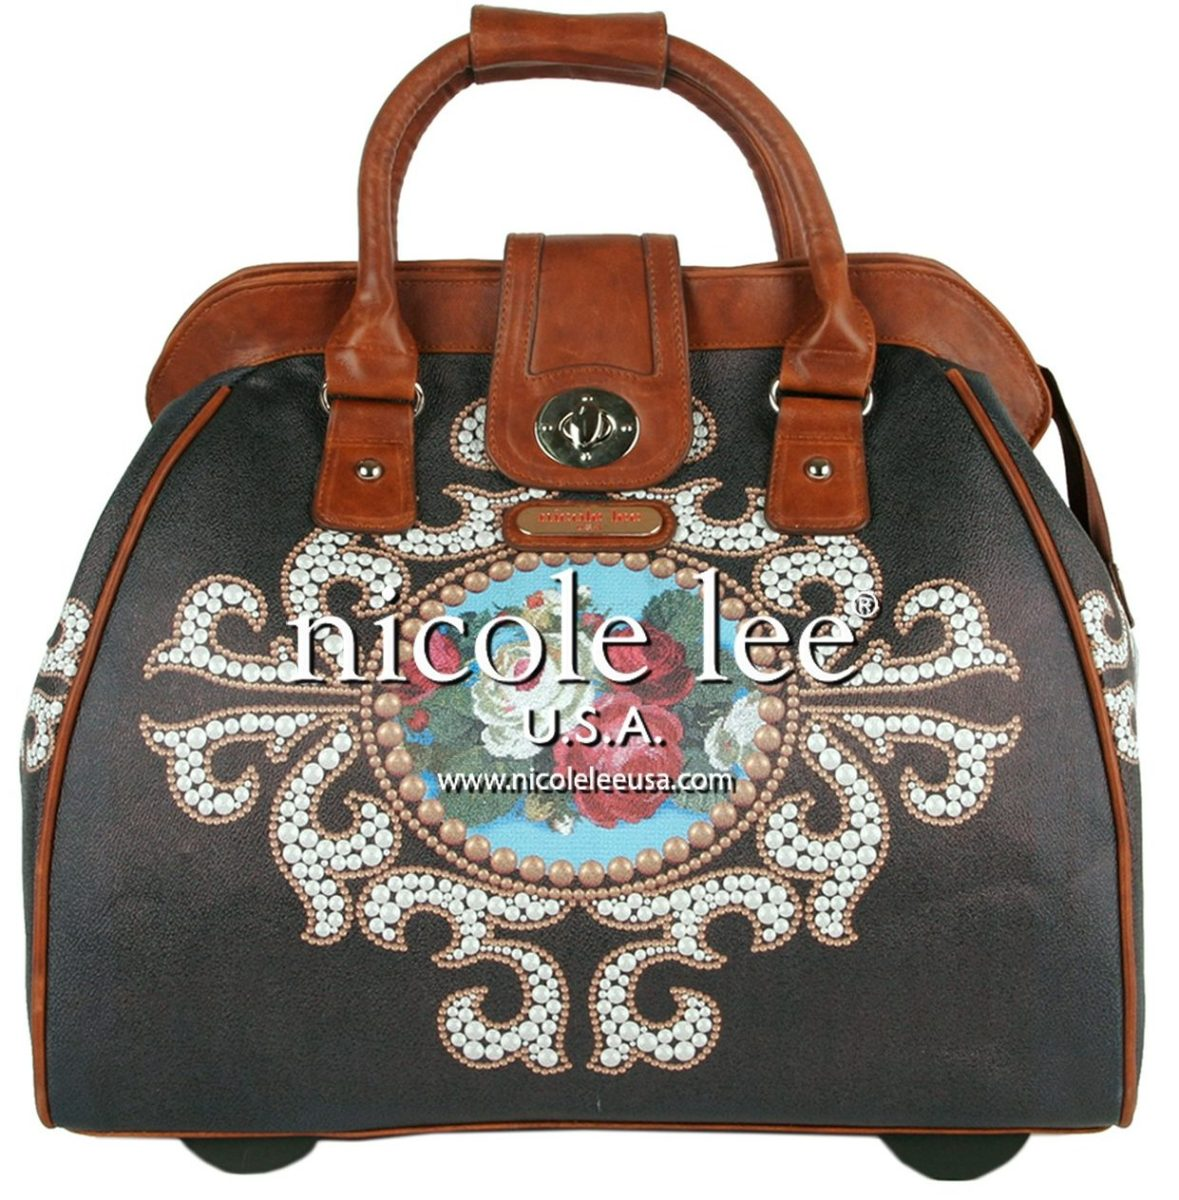 Cute wheeled laptop bags, rolling luggage for women